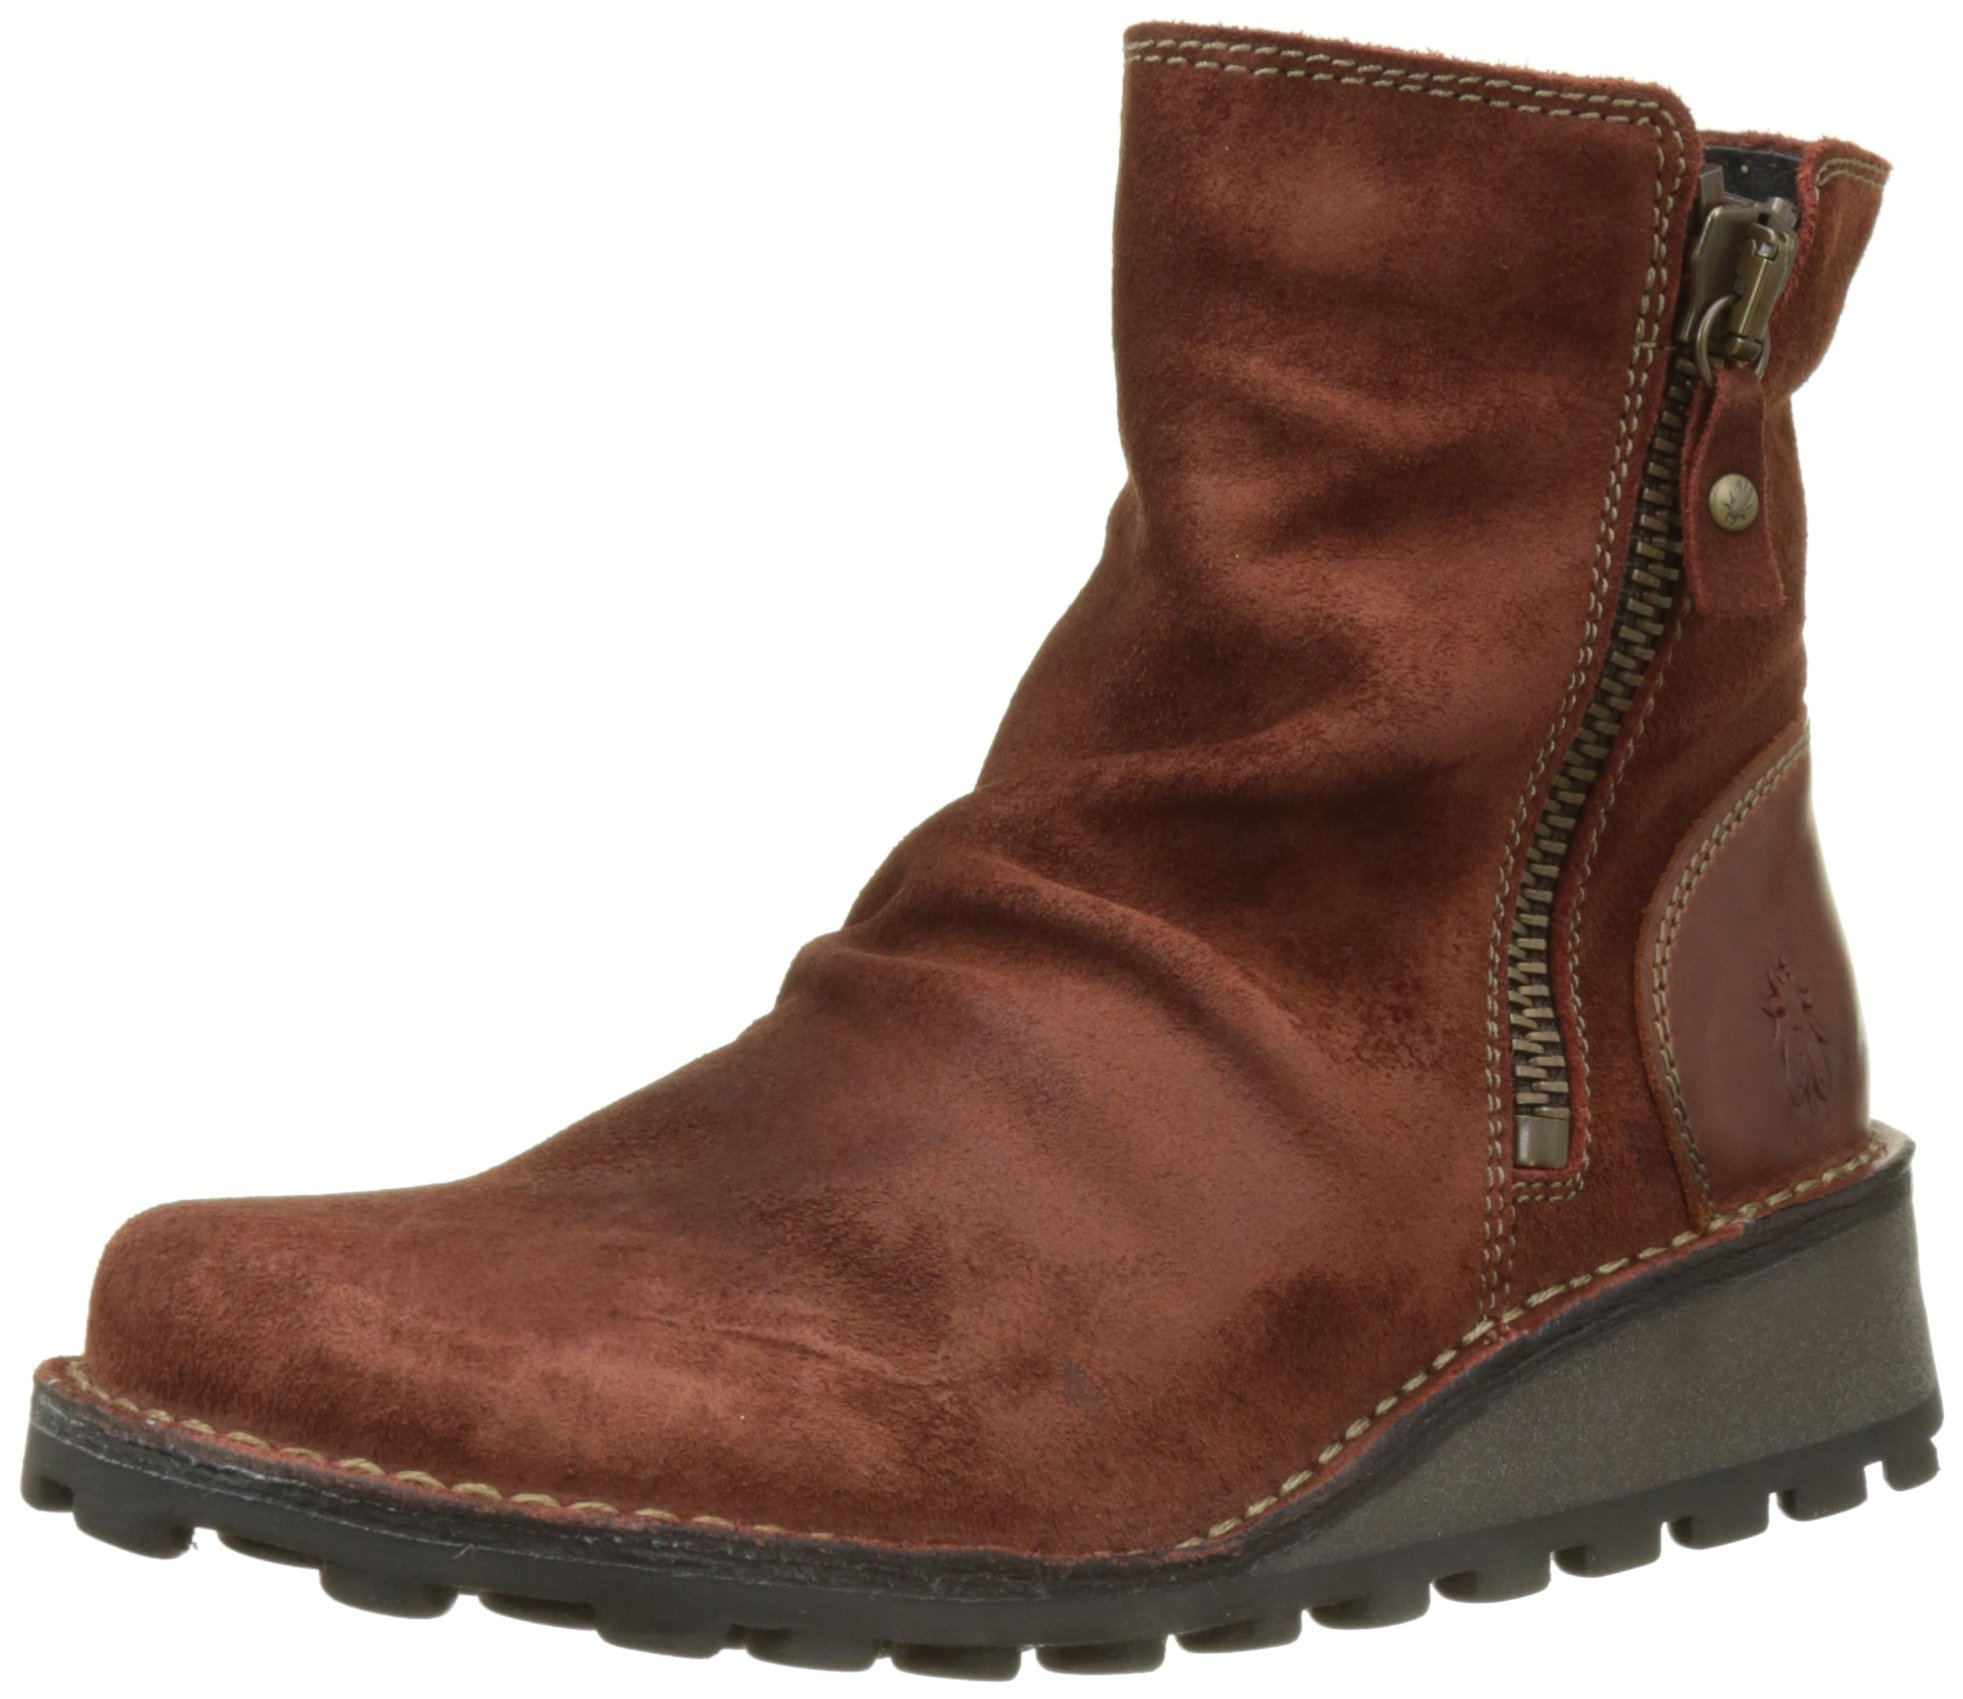 FLY London Women's MONG944FLY Ankle Boot, Brick Oil Suede/Rug, 38 M EU (7.5-8 US)